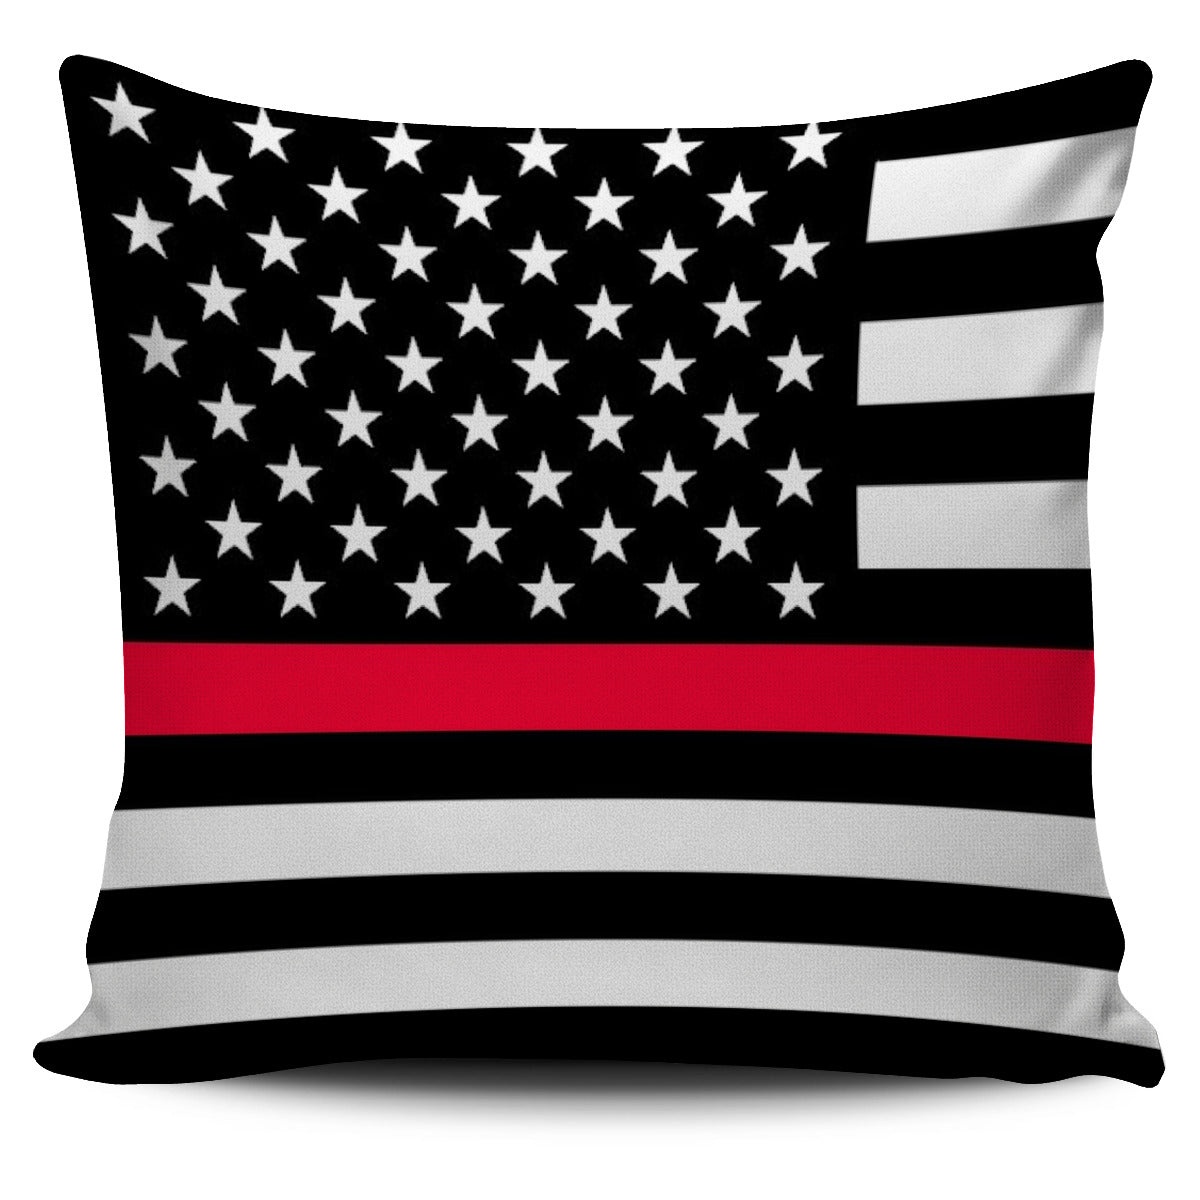 FREE Thin Red Line Pillow